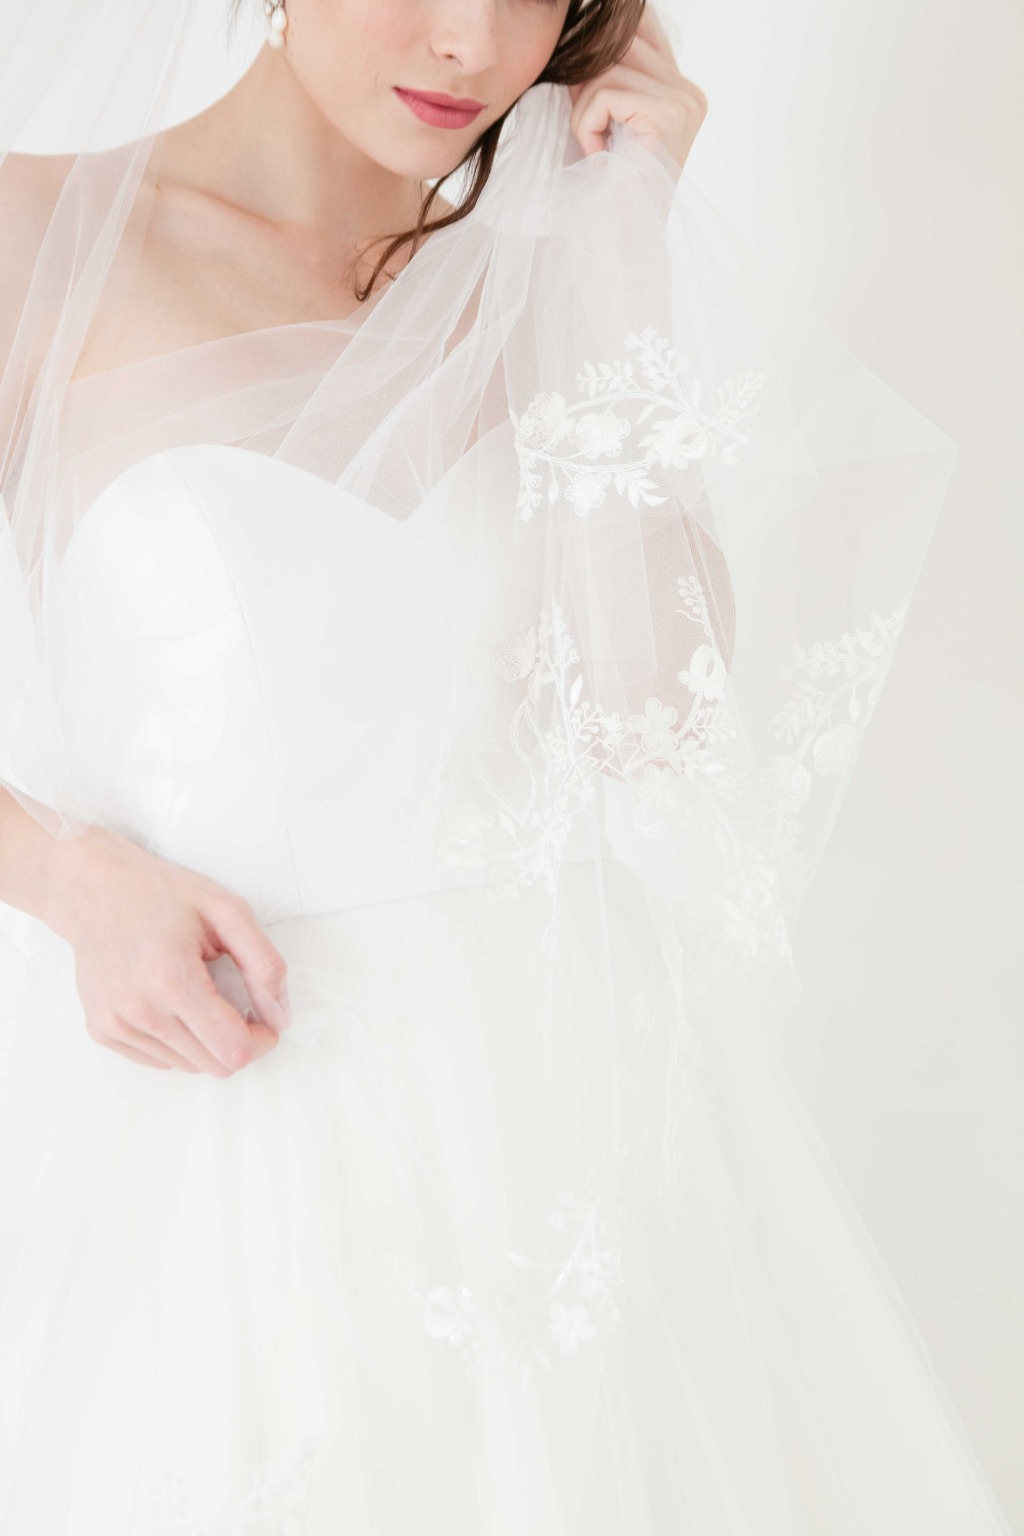 The delicate wedding veil details